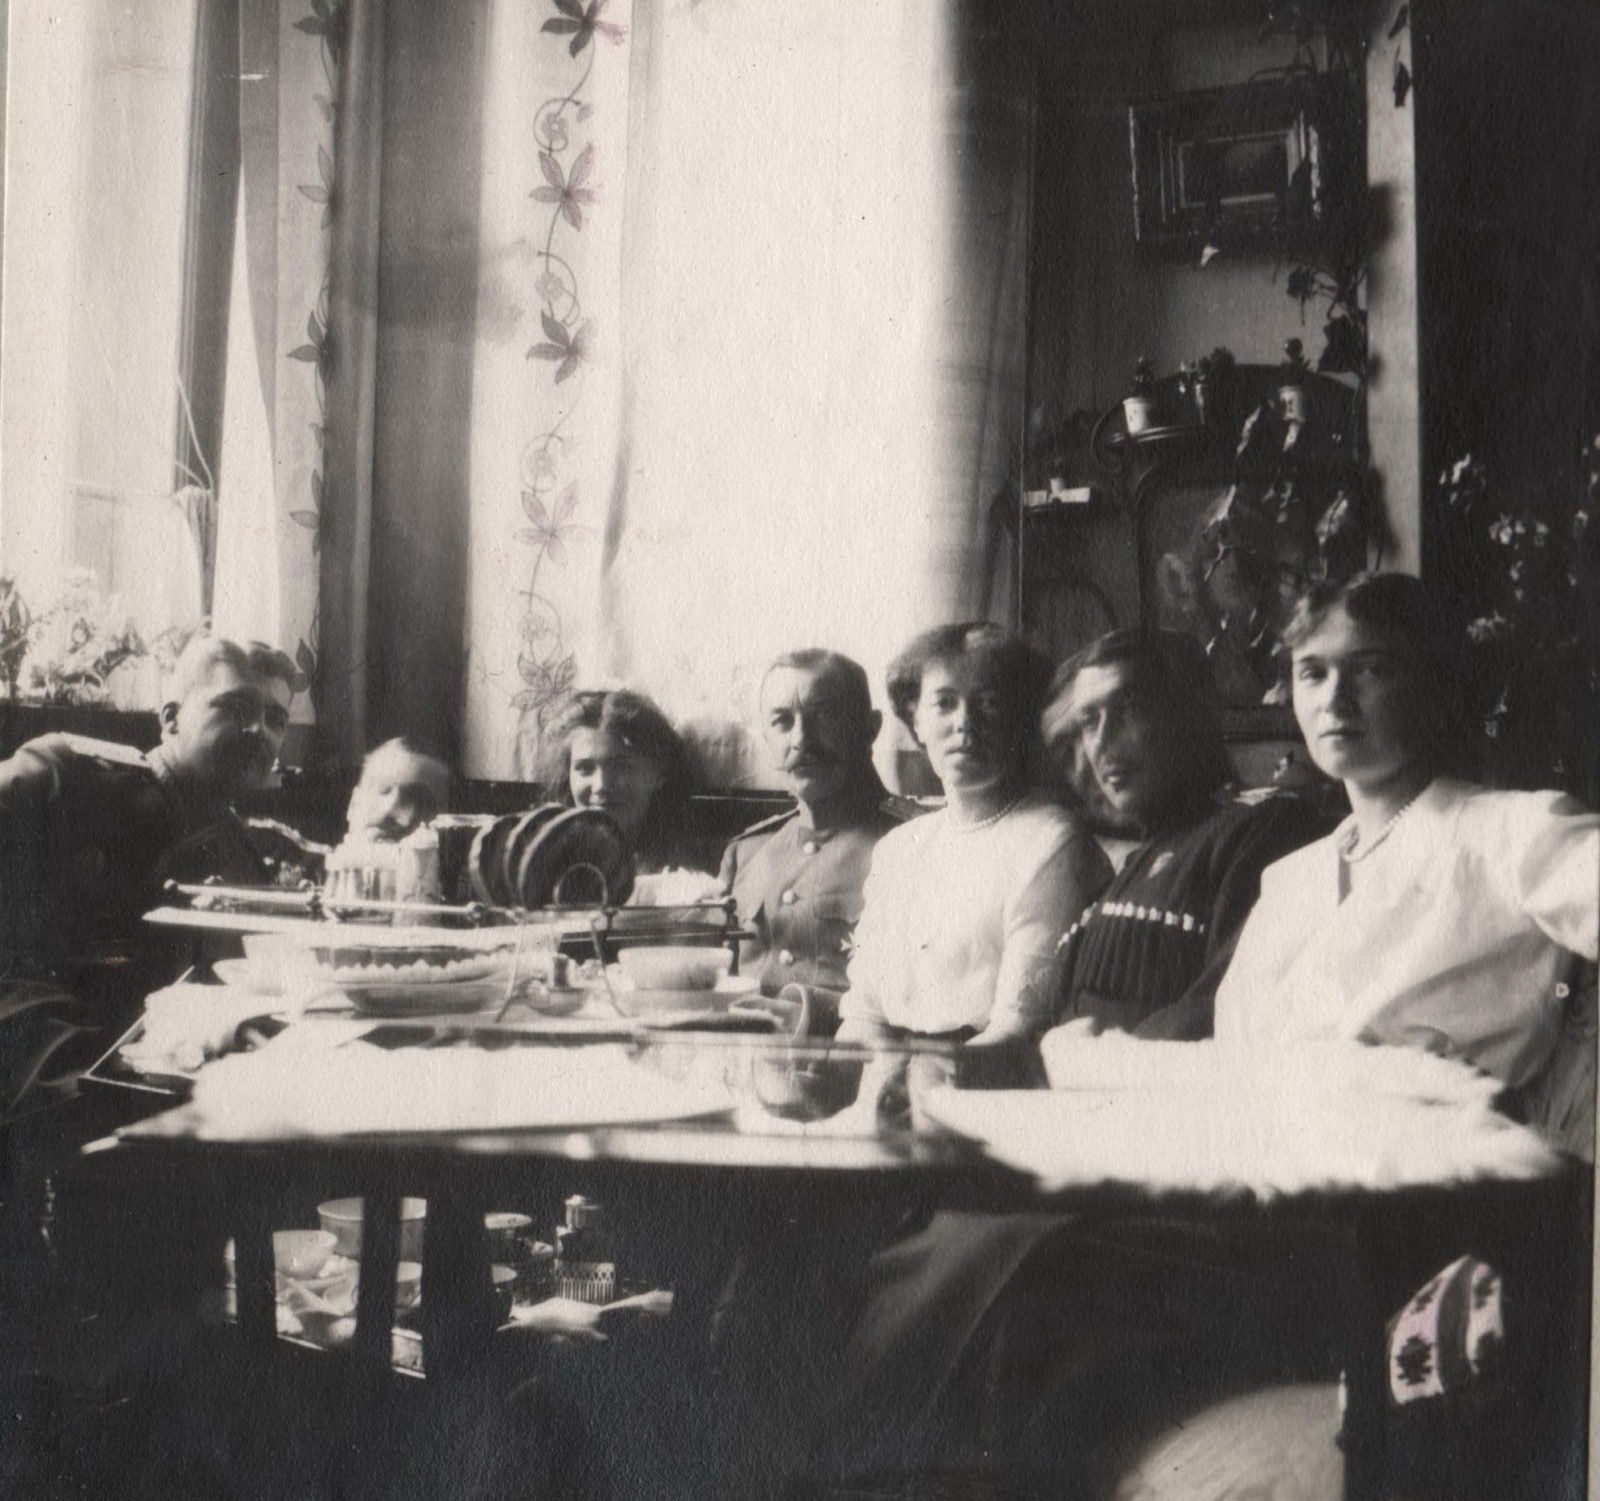 Daughters of Emperor Nicholas II Grand Princess Olga, Maria Nikolaevna and Grand Duchess Olga Alexandrovna with relatives.